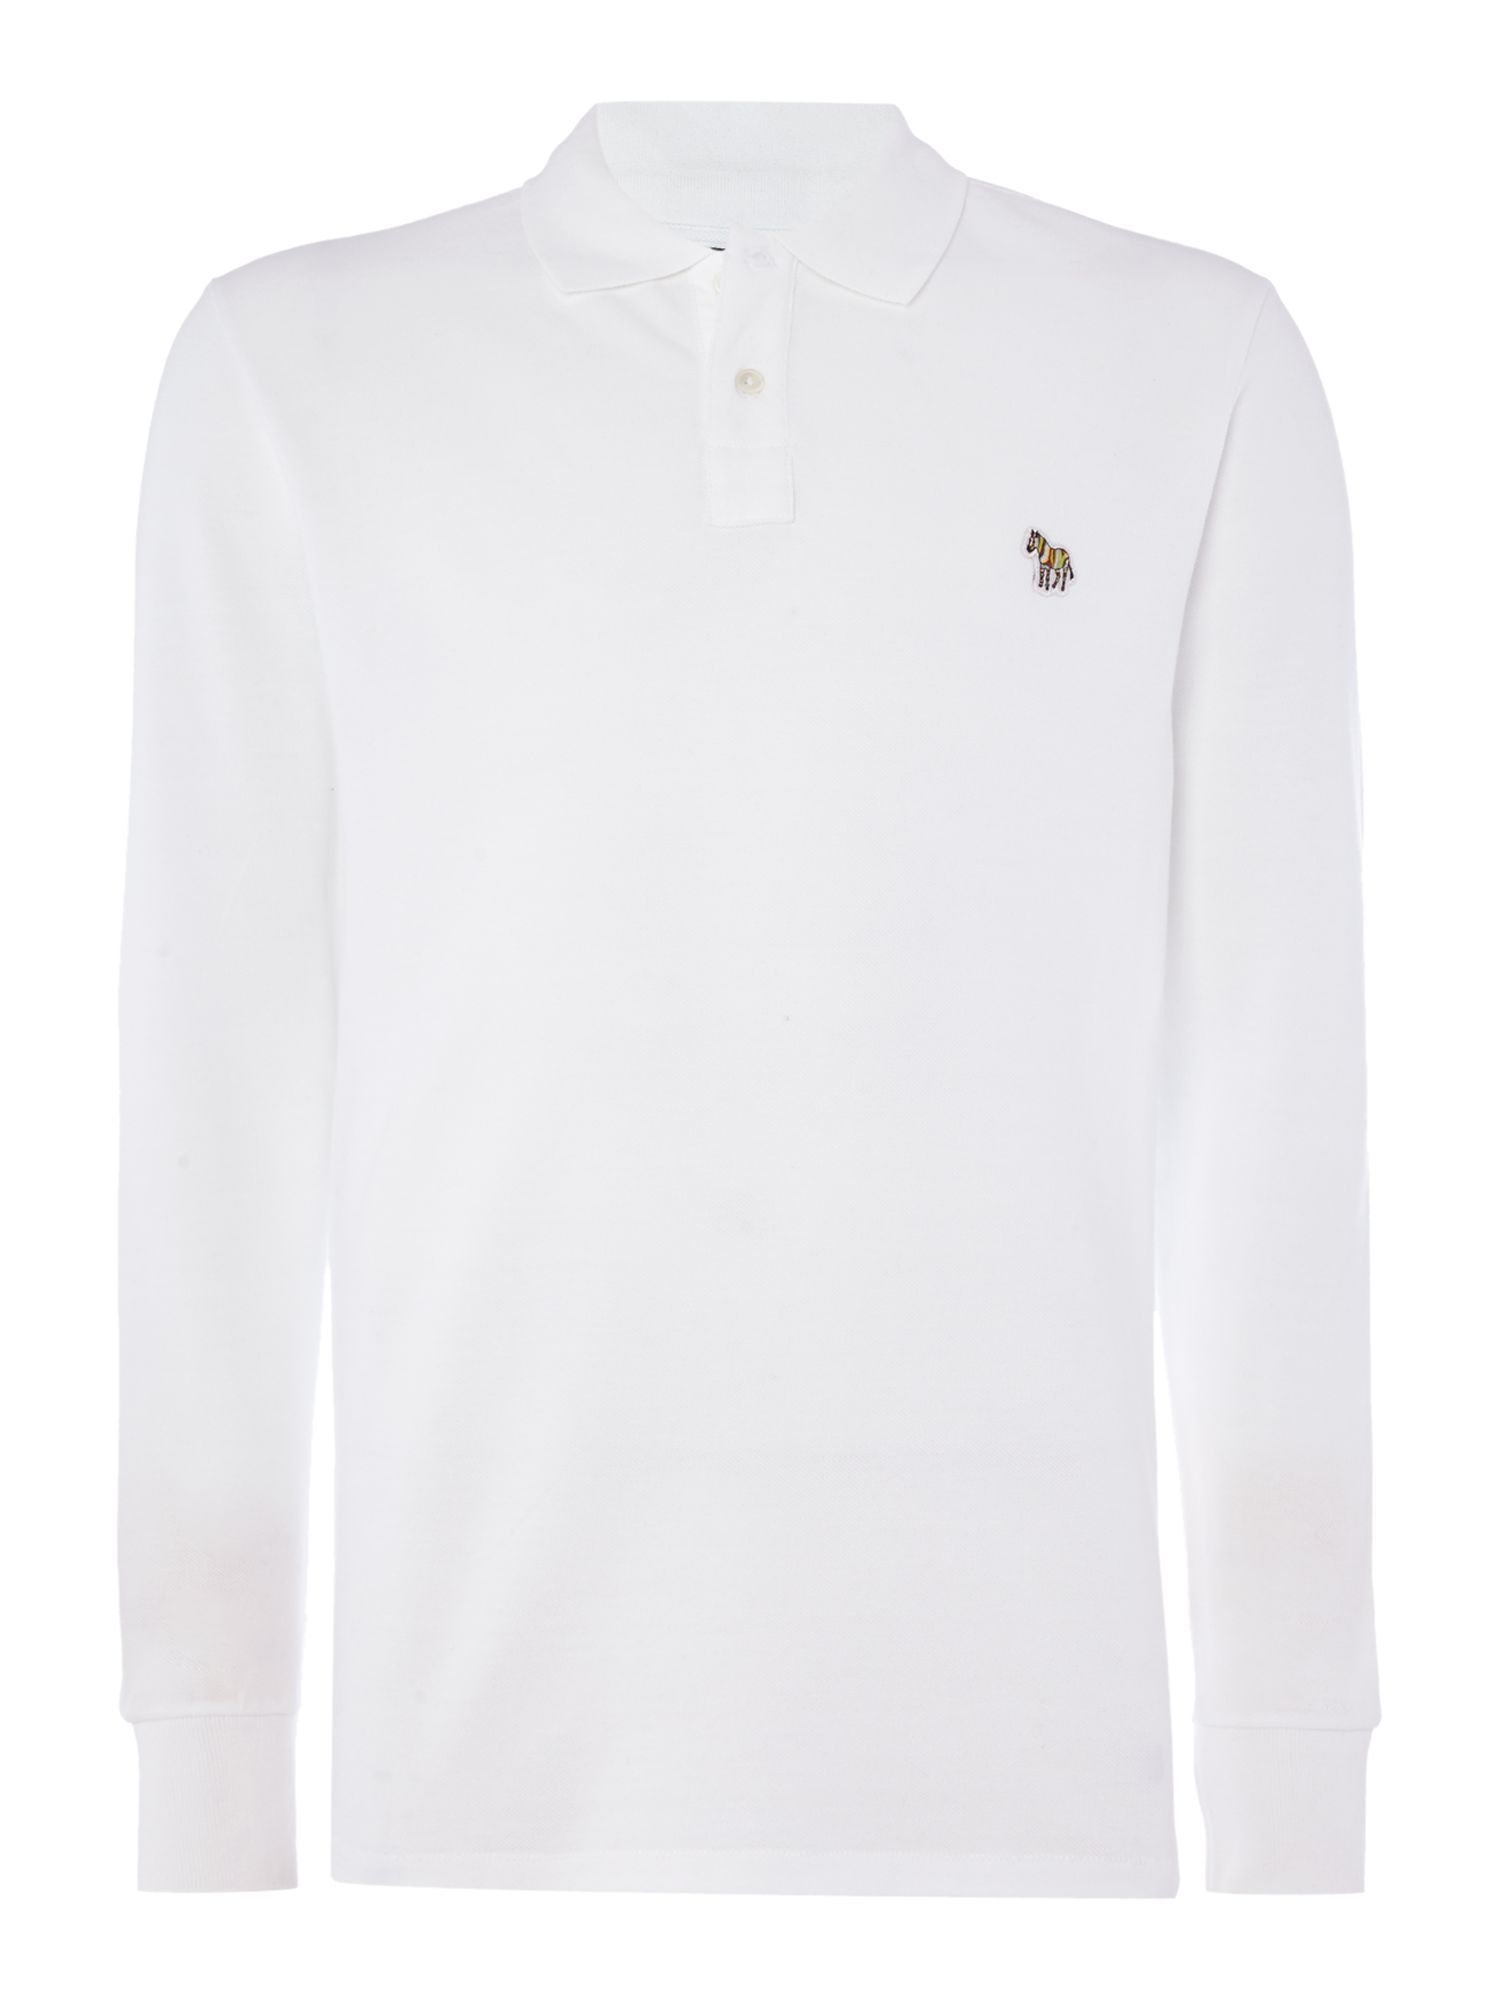 Men's PS By Paul Smith Regular fit zebra logo long-sleeve polo shirt, White